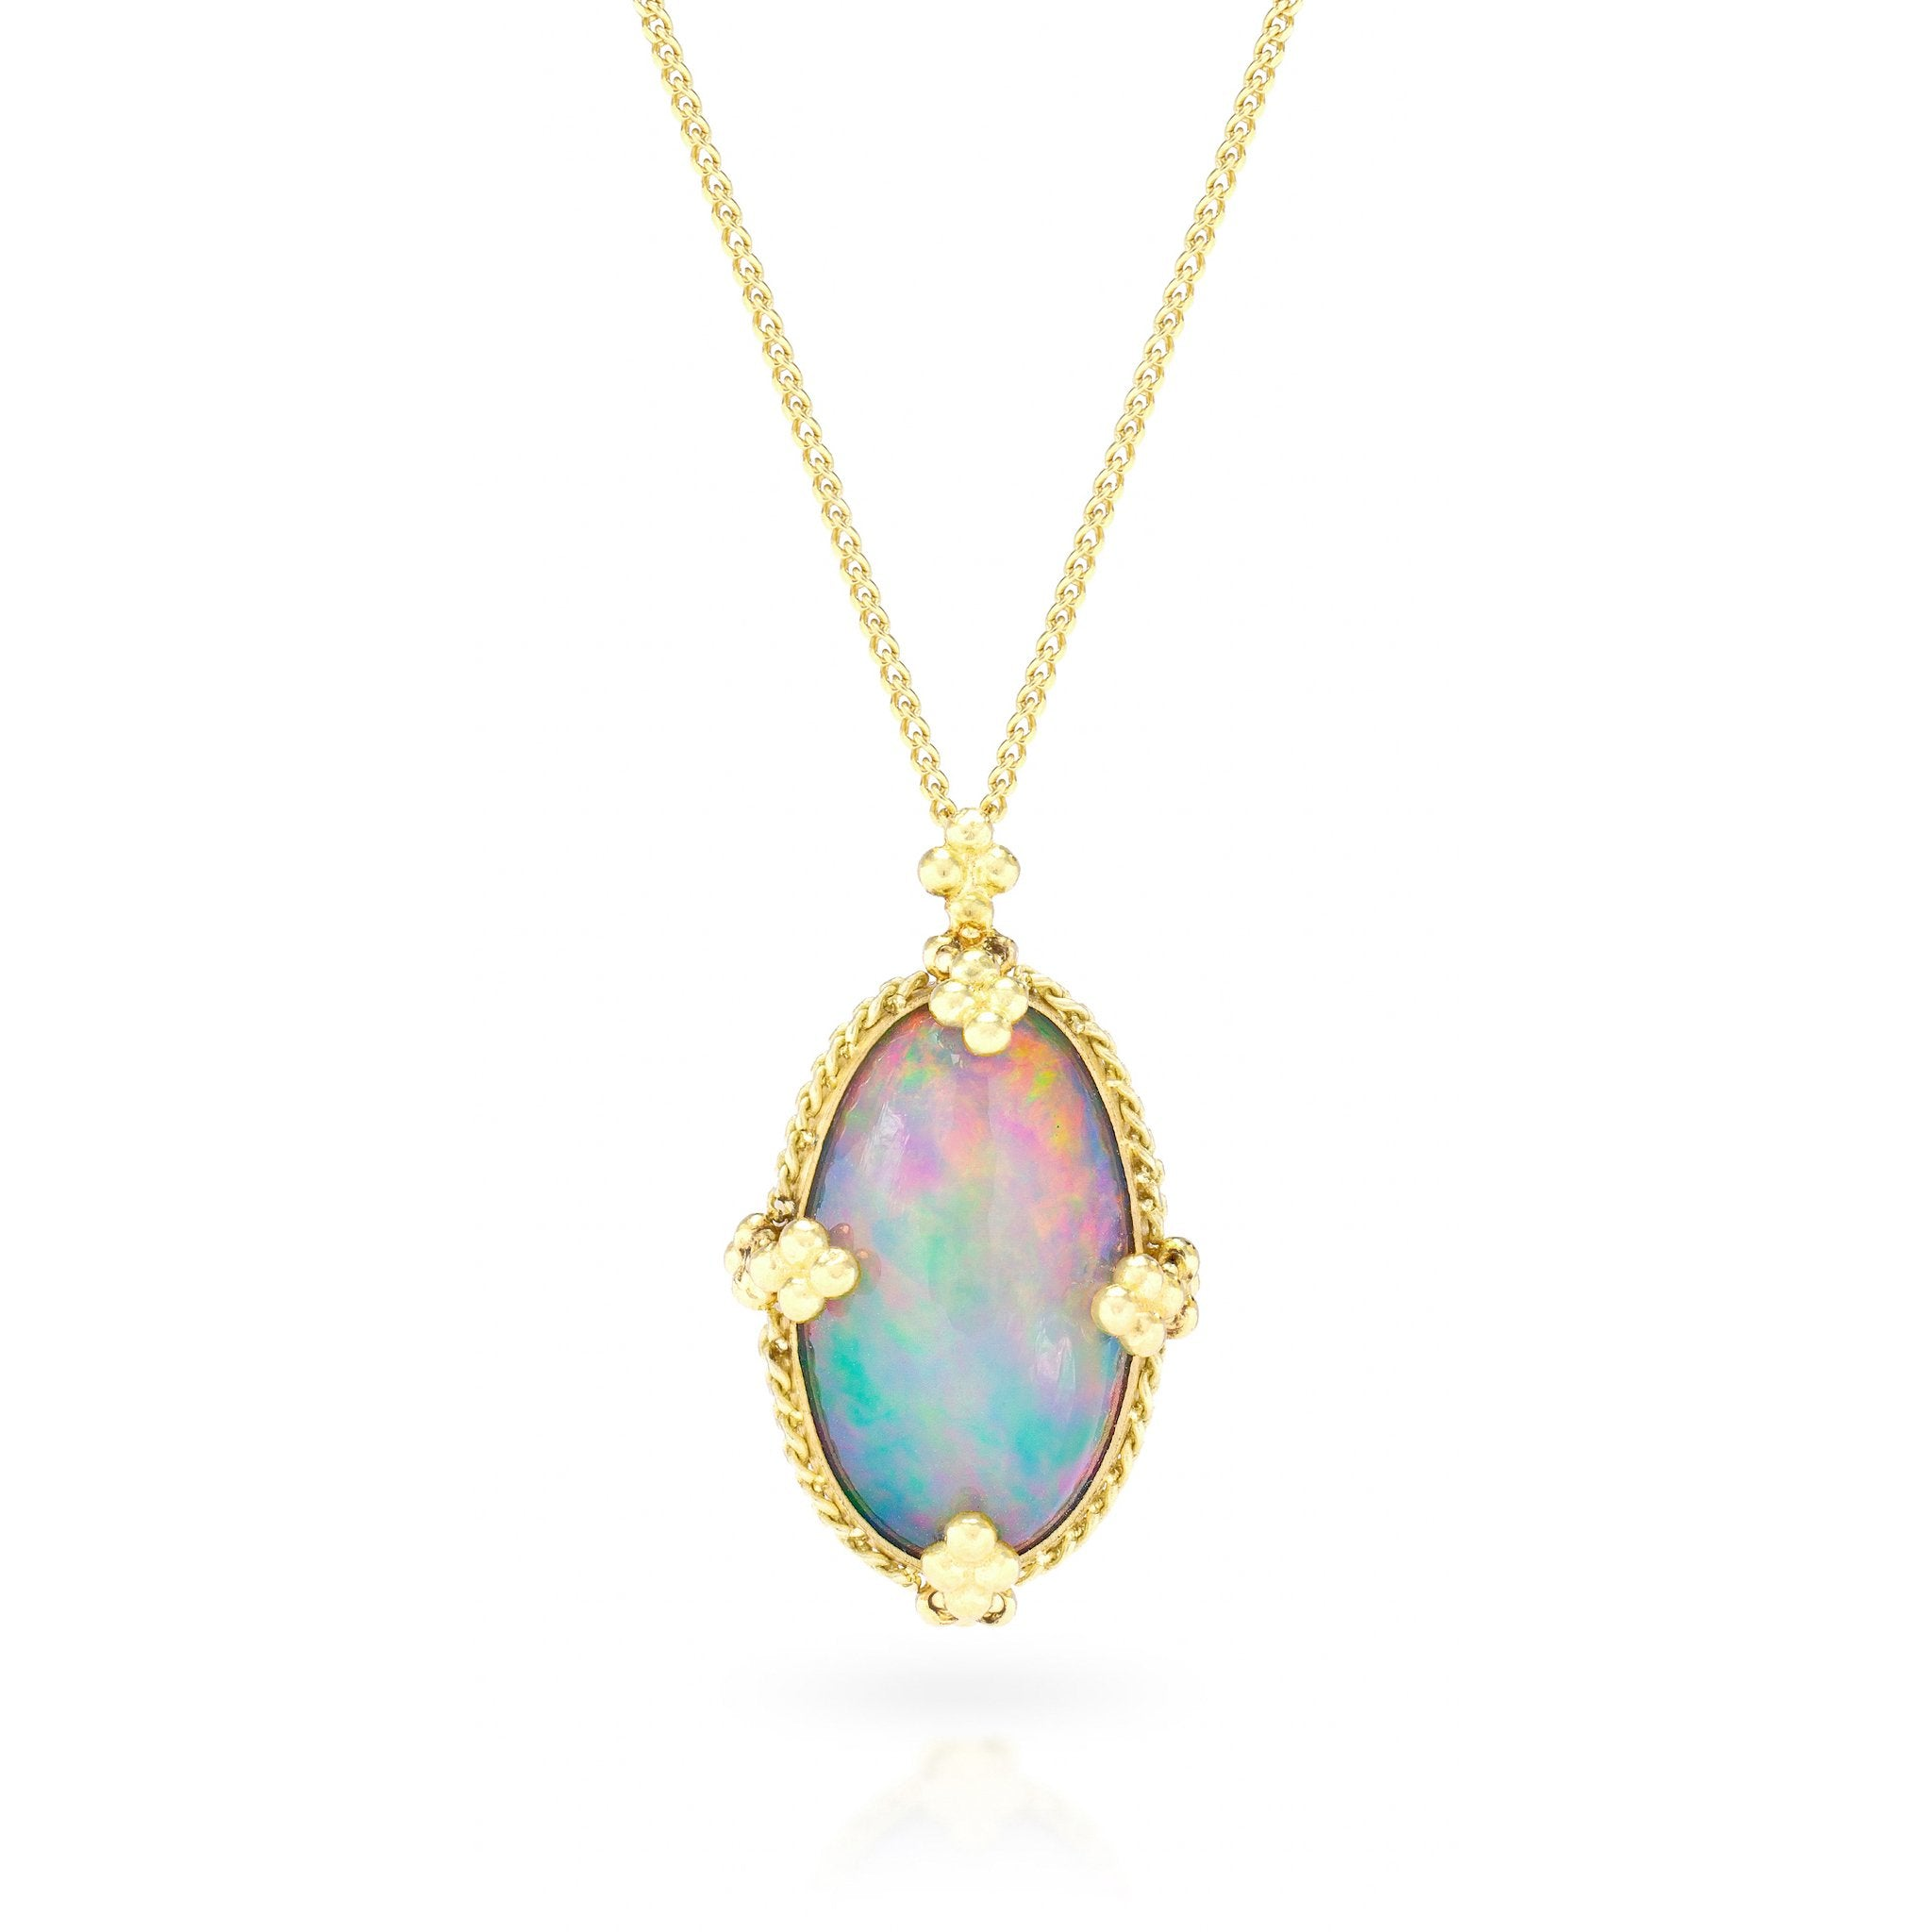 Amali-Ethiopian Opal Necklace